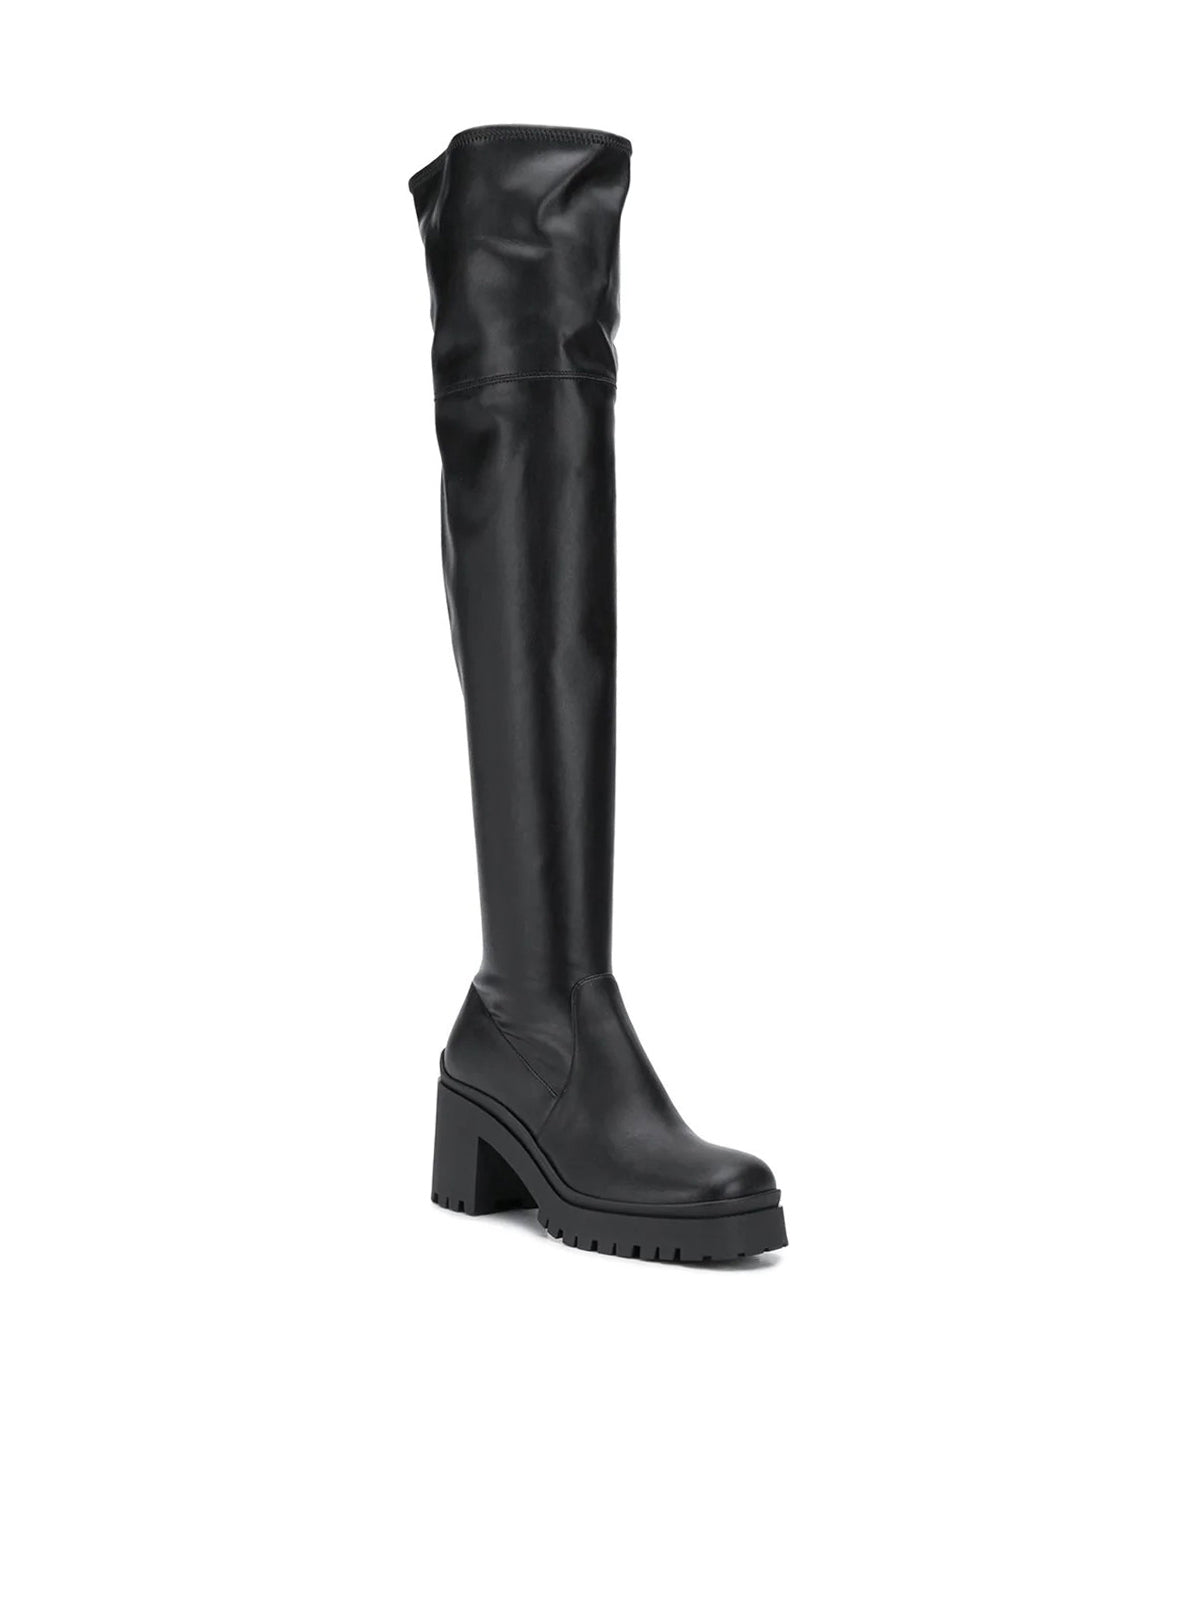 thigh-high mid-heel boots